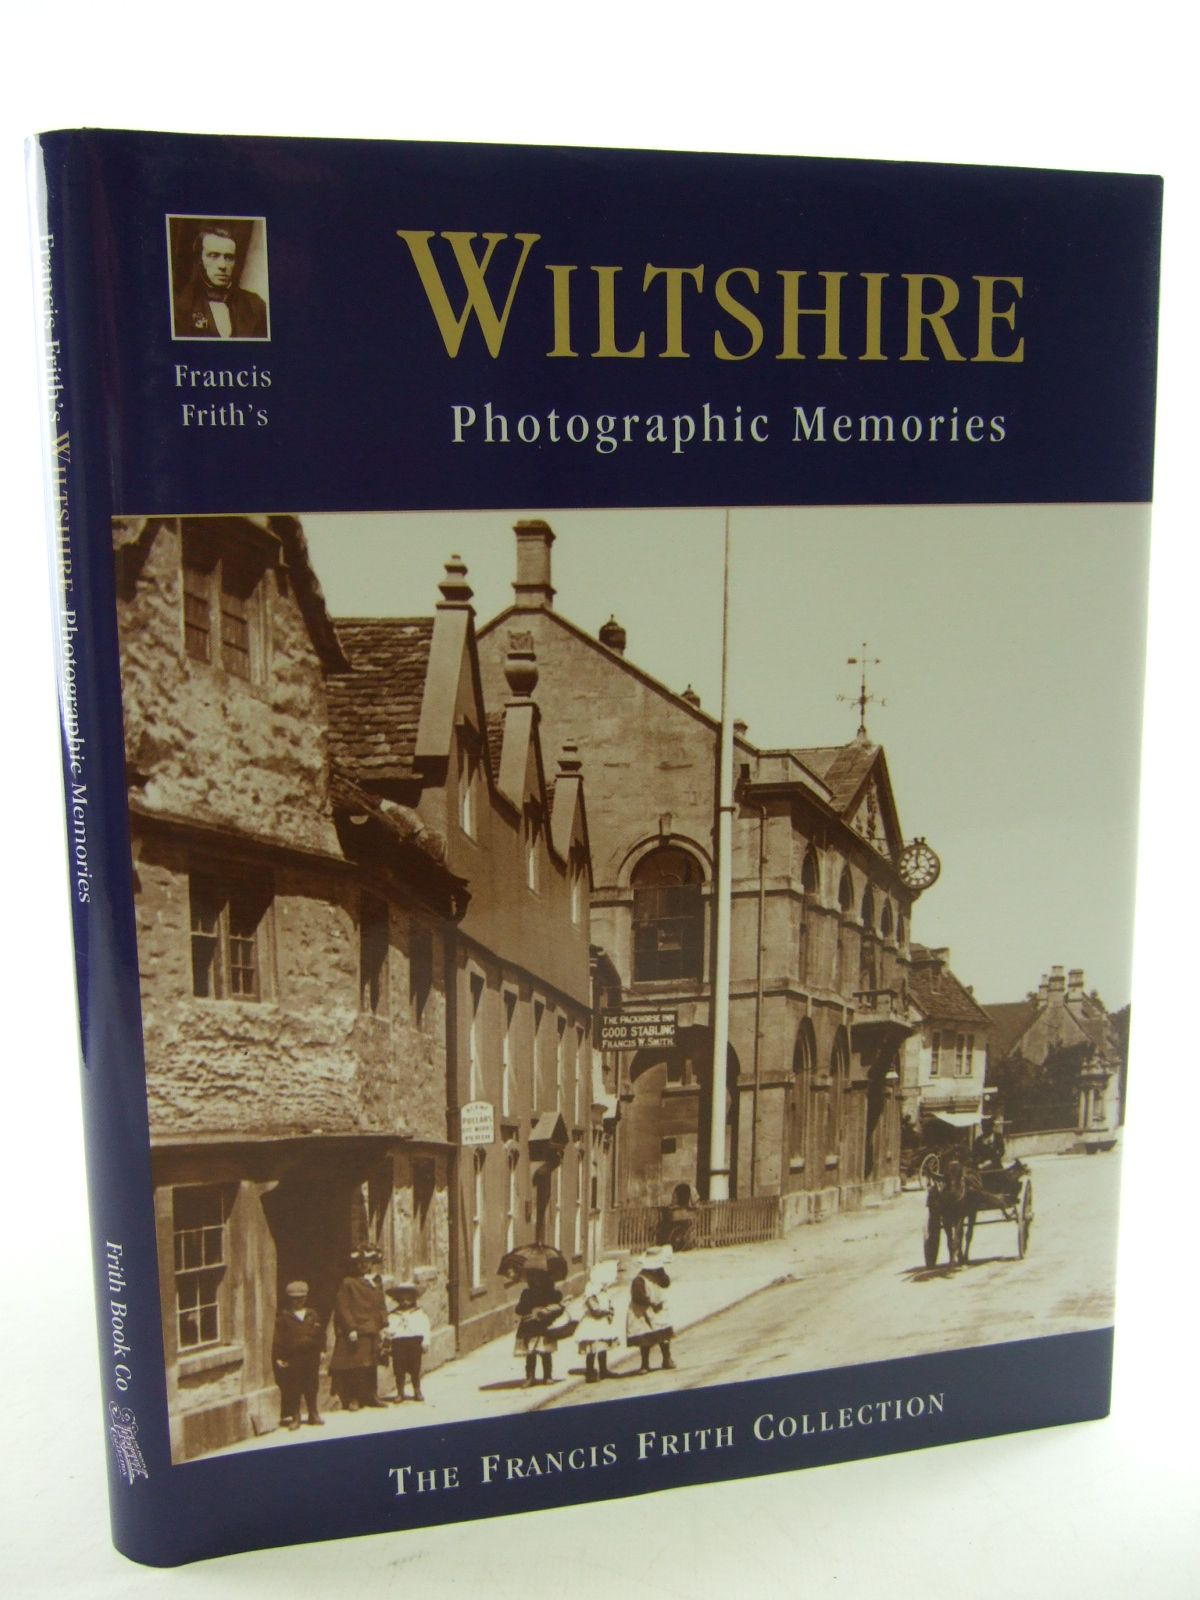 Photo of FRANCIS FRITH'S WILTSHIRE written by Needham, Dennis Moores, Les illustrated by Frith, Francis published by Frith Book Company (STOCK CODE: 1805300)  for sale by Stella & Rose's Books